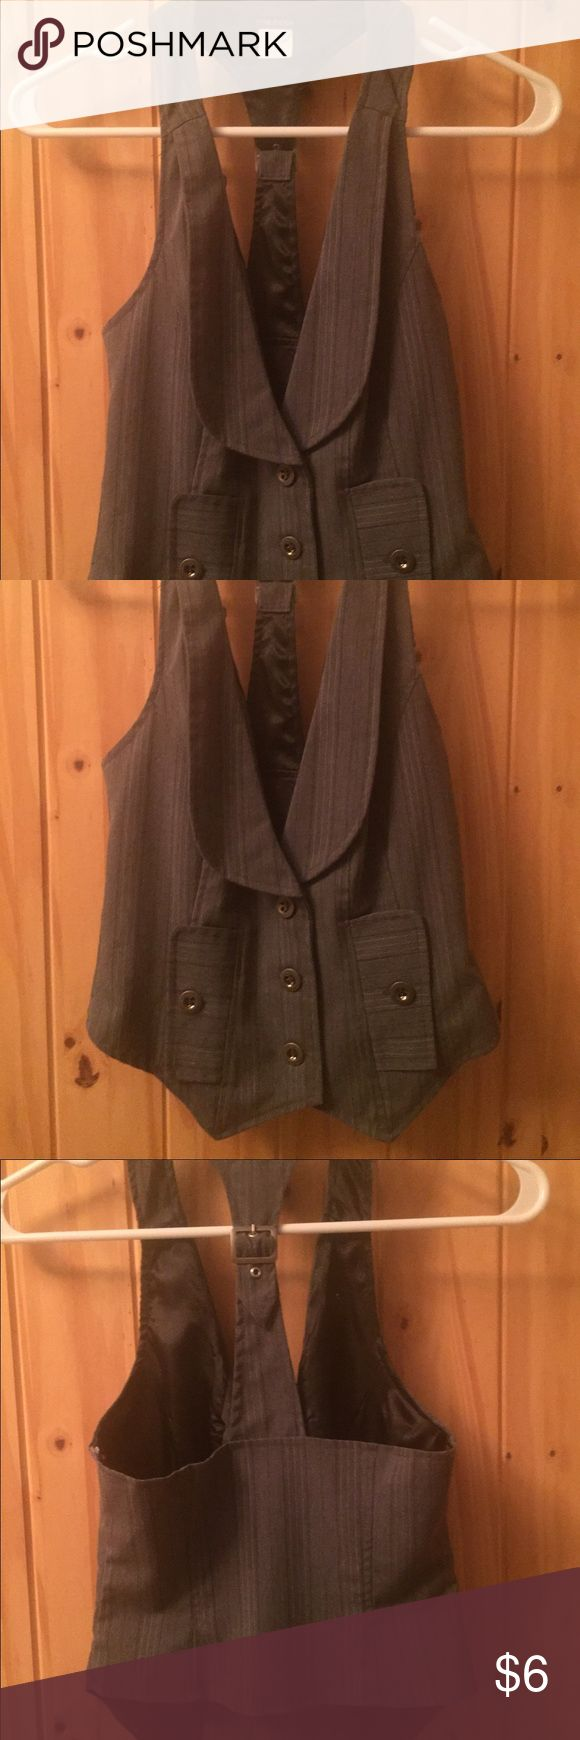 Gray pin stripe vest Flattering fit, buckle detail on back. Great condition, cute for the office! Maurices Jackets & Coats Vests